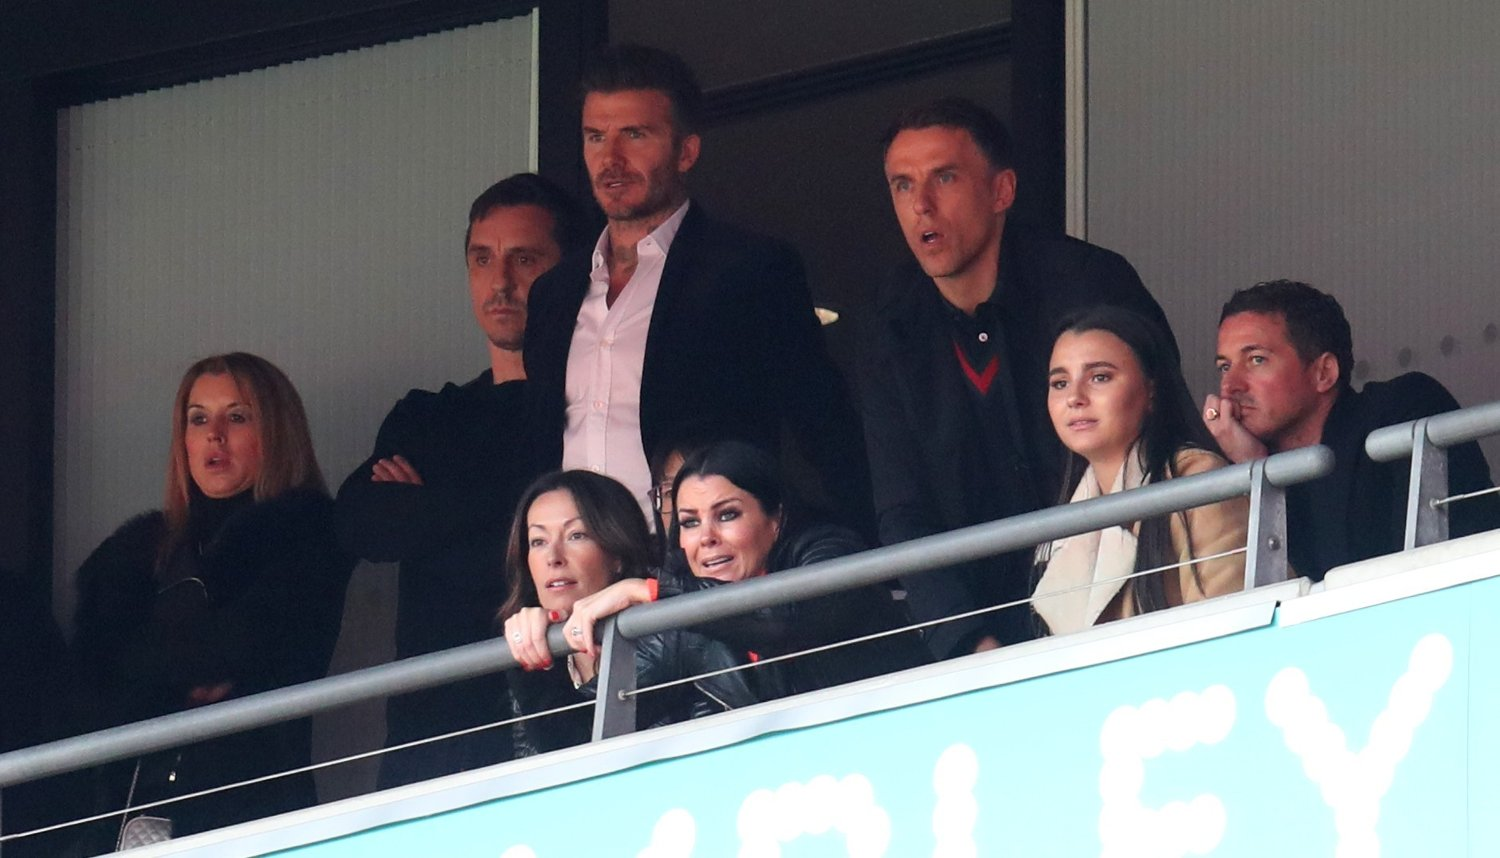 Salford City co-owners Gary Neville, David Beckham and Phil Neville watch the Vanarama National League Play-off Final at Wembley Stadium, London.